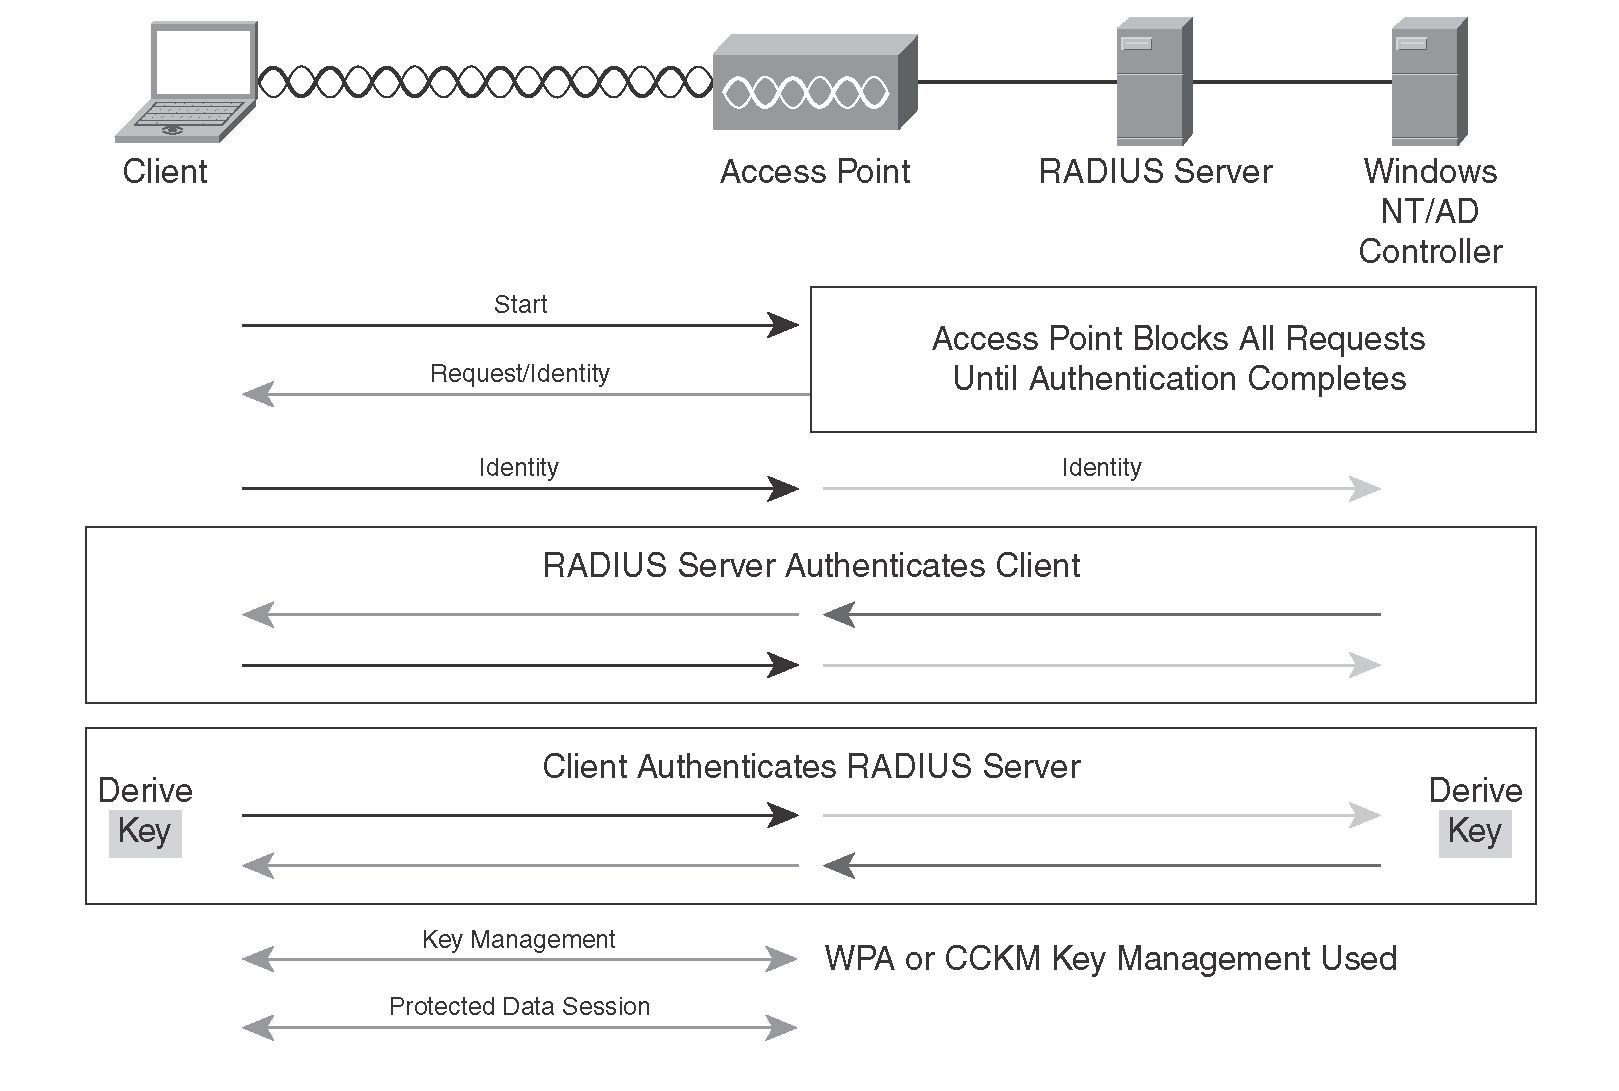 8021x And EAP Authentication Protocols